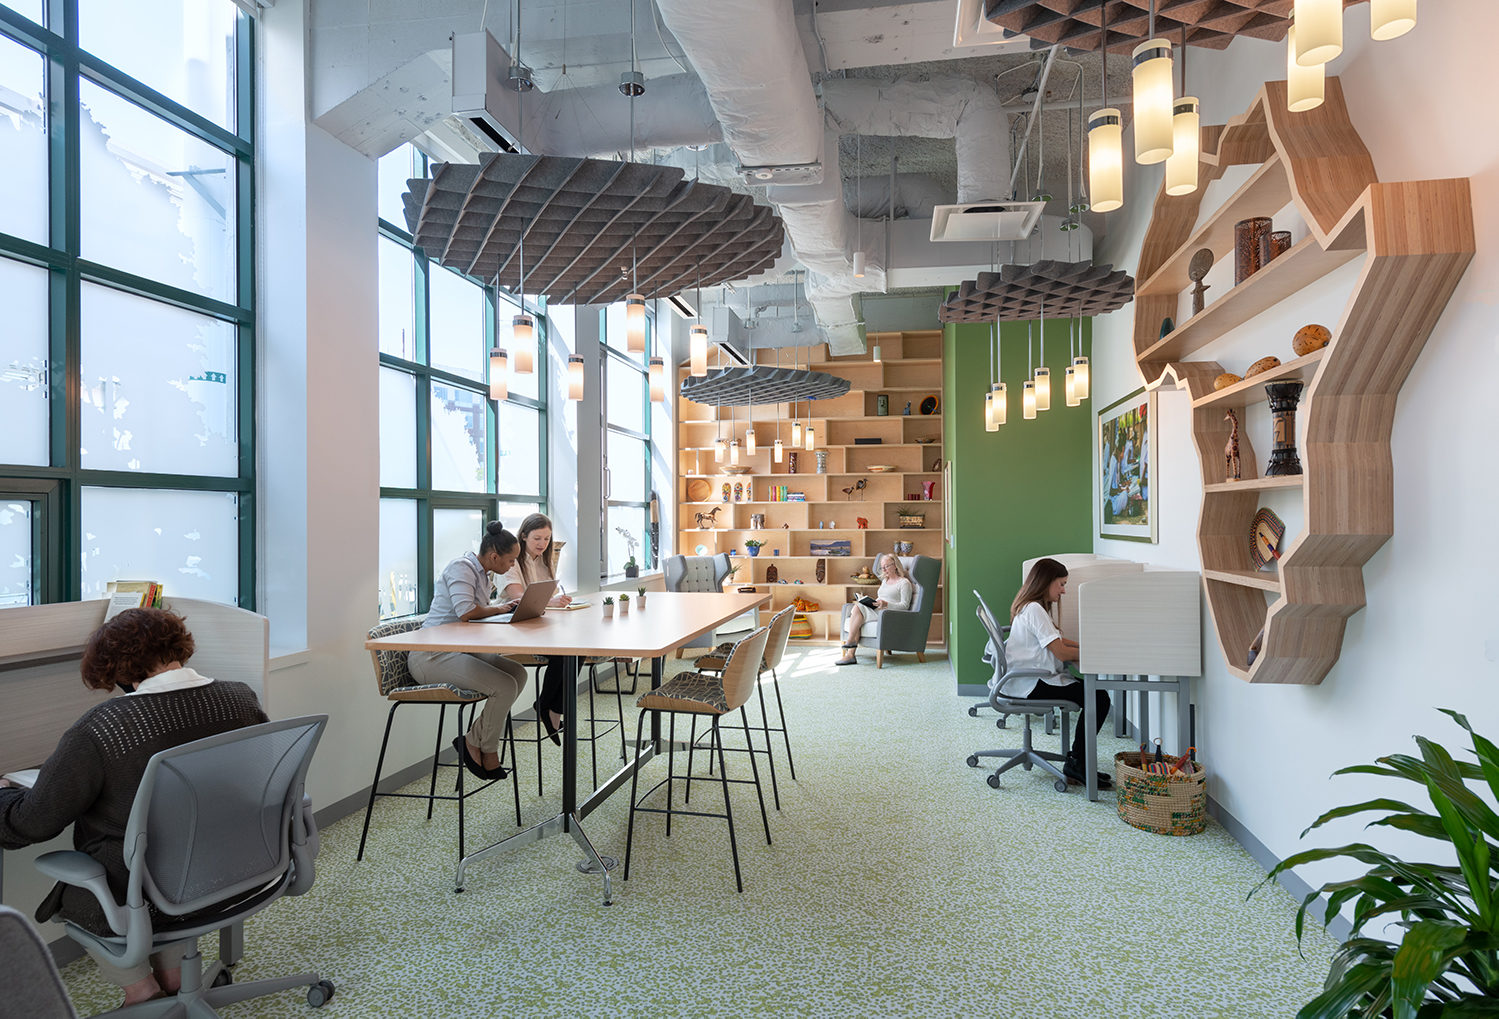 stool, private work space, creative office pavilion, who we are